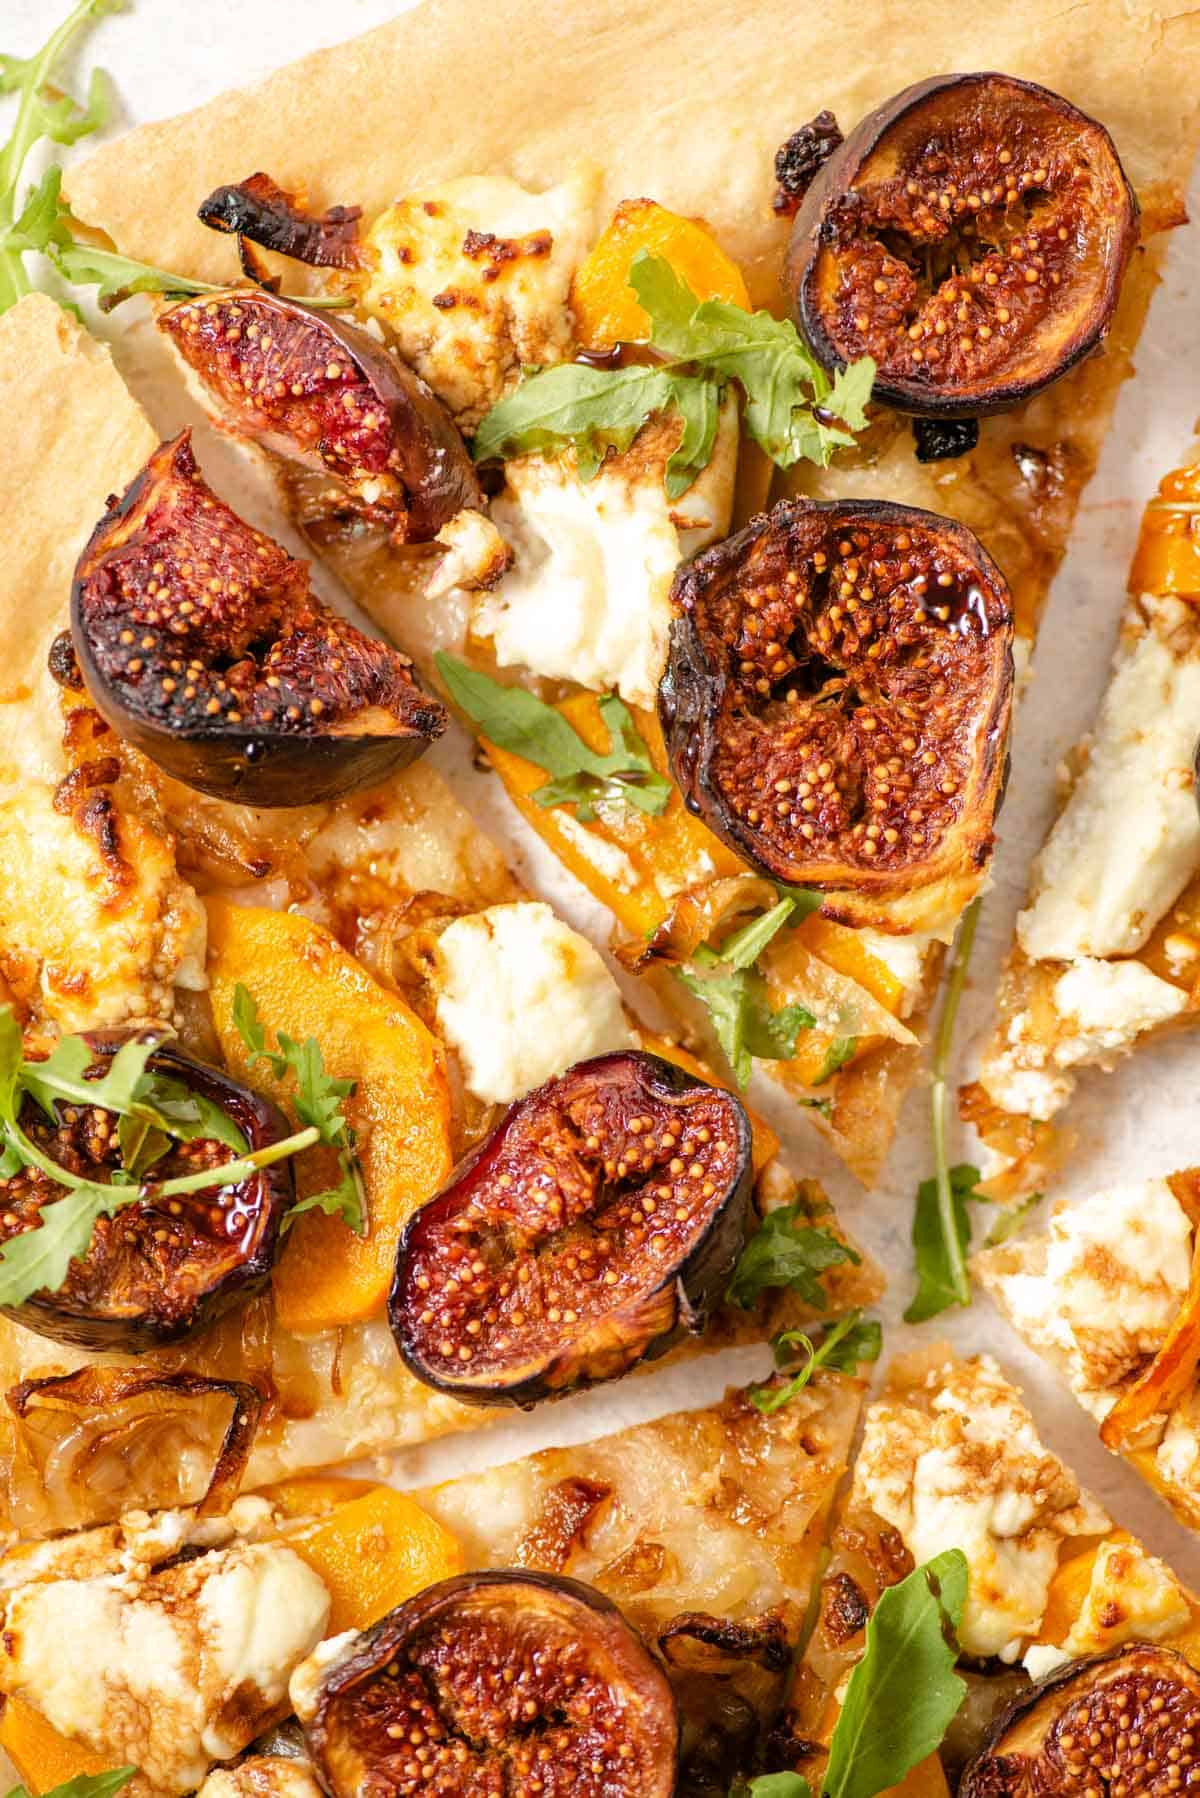 A close up of slices of pizza topped with figs and goats cheese